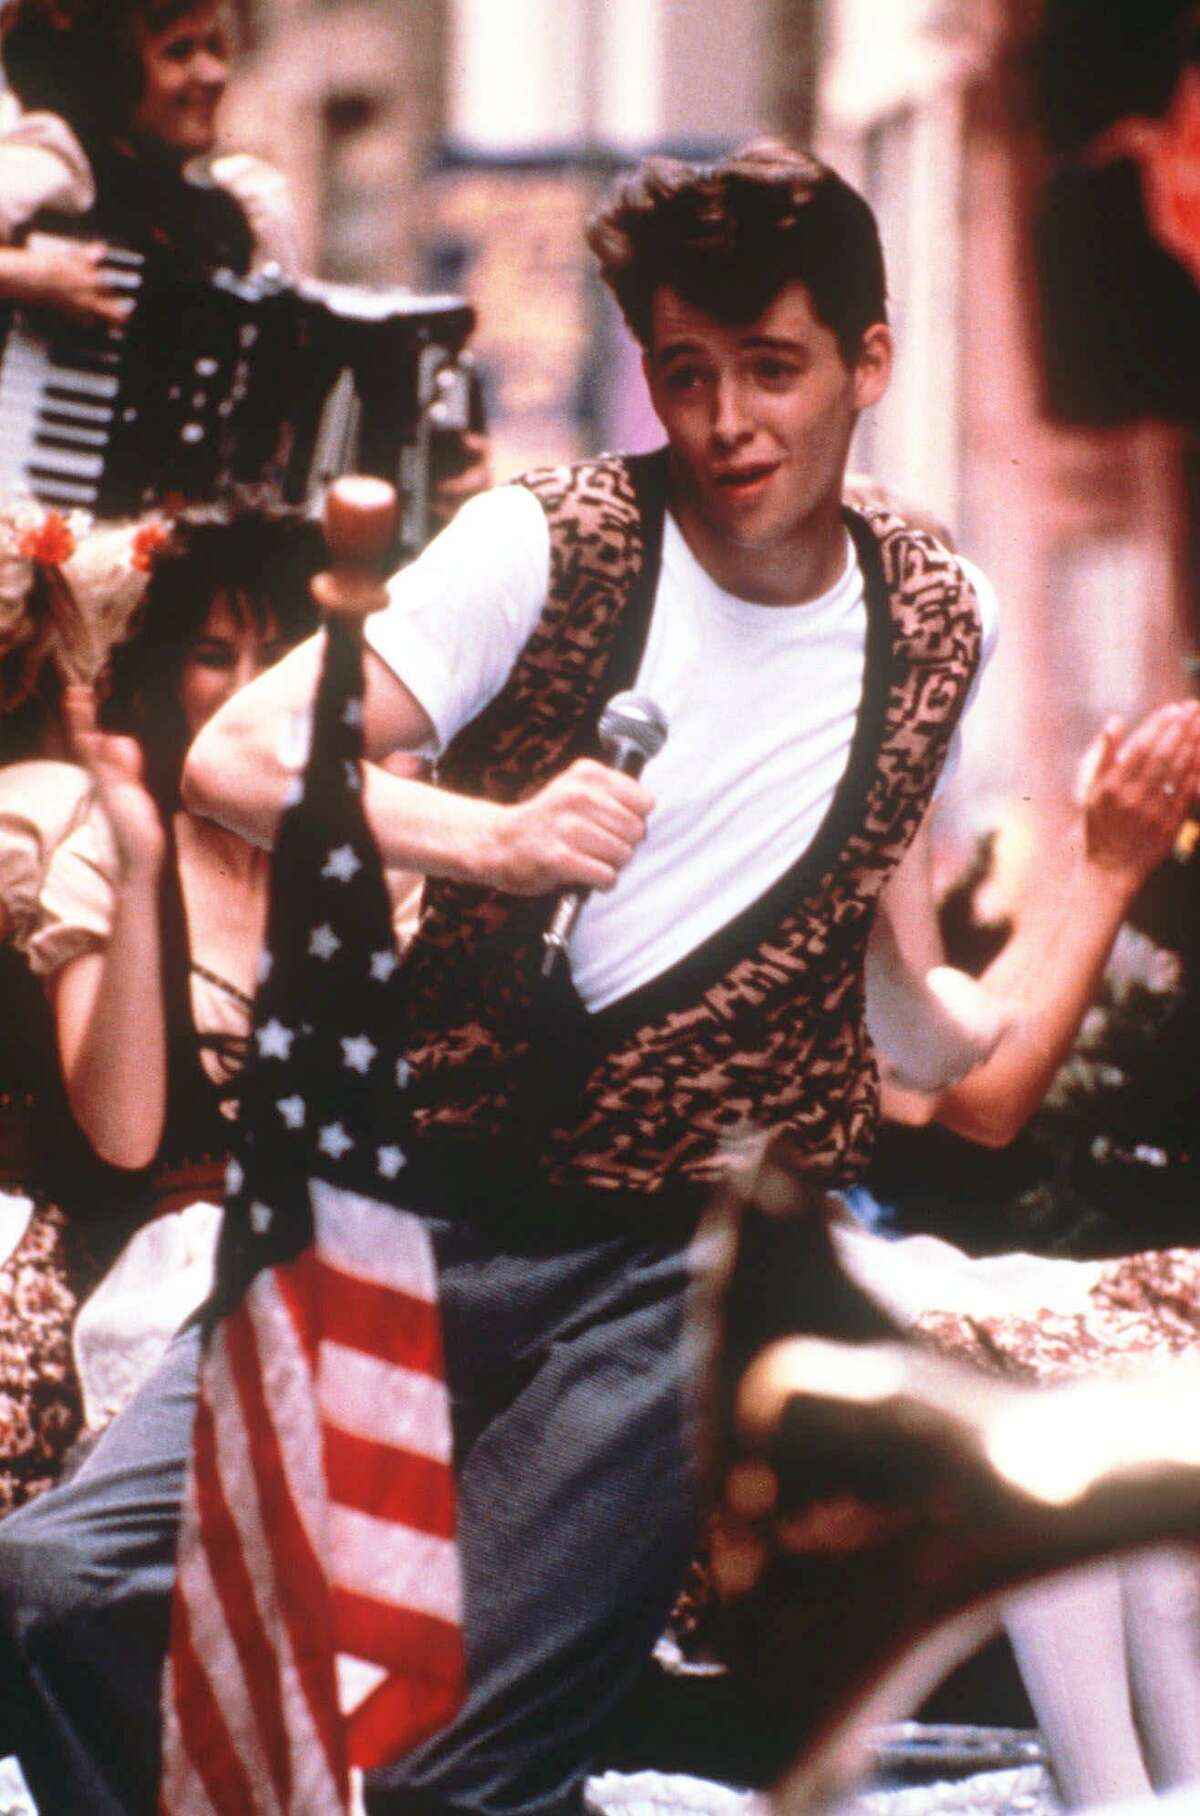 Ferris Bueller's Day Off (1986): Frustrated that the entire school believes Ferris' (Matthew Broderick) story about being too sick to come to class, his sister decides to blow his cover - unsuccessfully of course. But, assuming both siblings would be on their parents' mobile phone plan, Ferris' sister could simply have used the Find My Phone app to track his whereabouts and show her credulous parents that their poor, sweet son wasn't home sick, he was out gallivanting with friends.